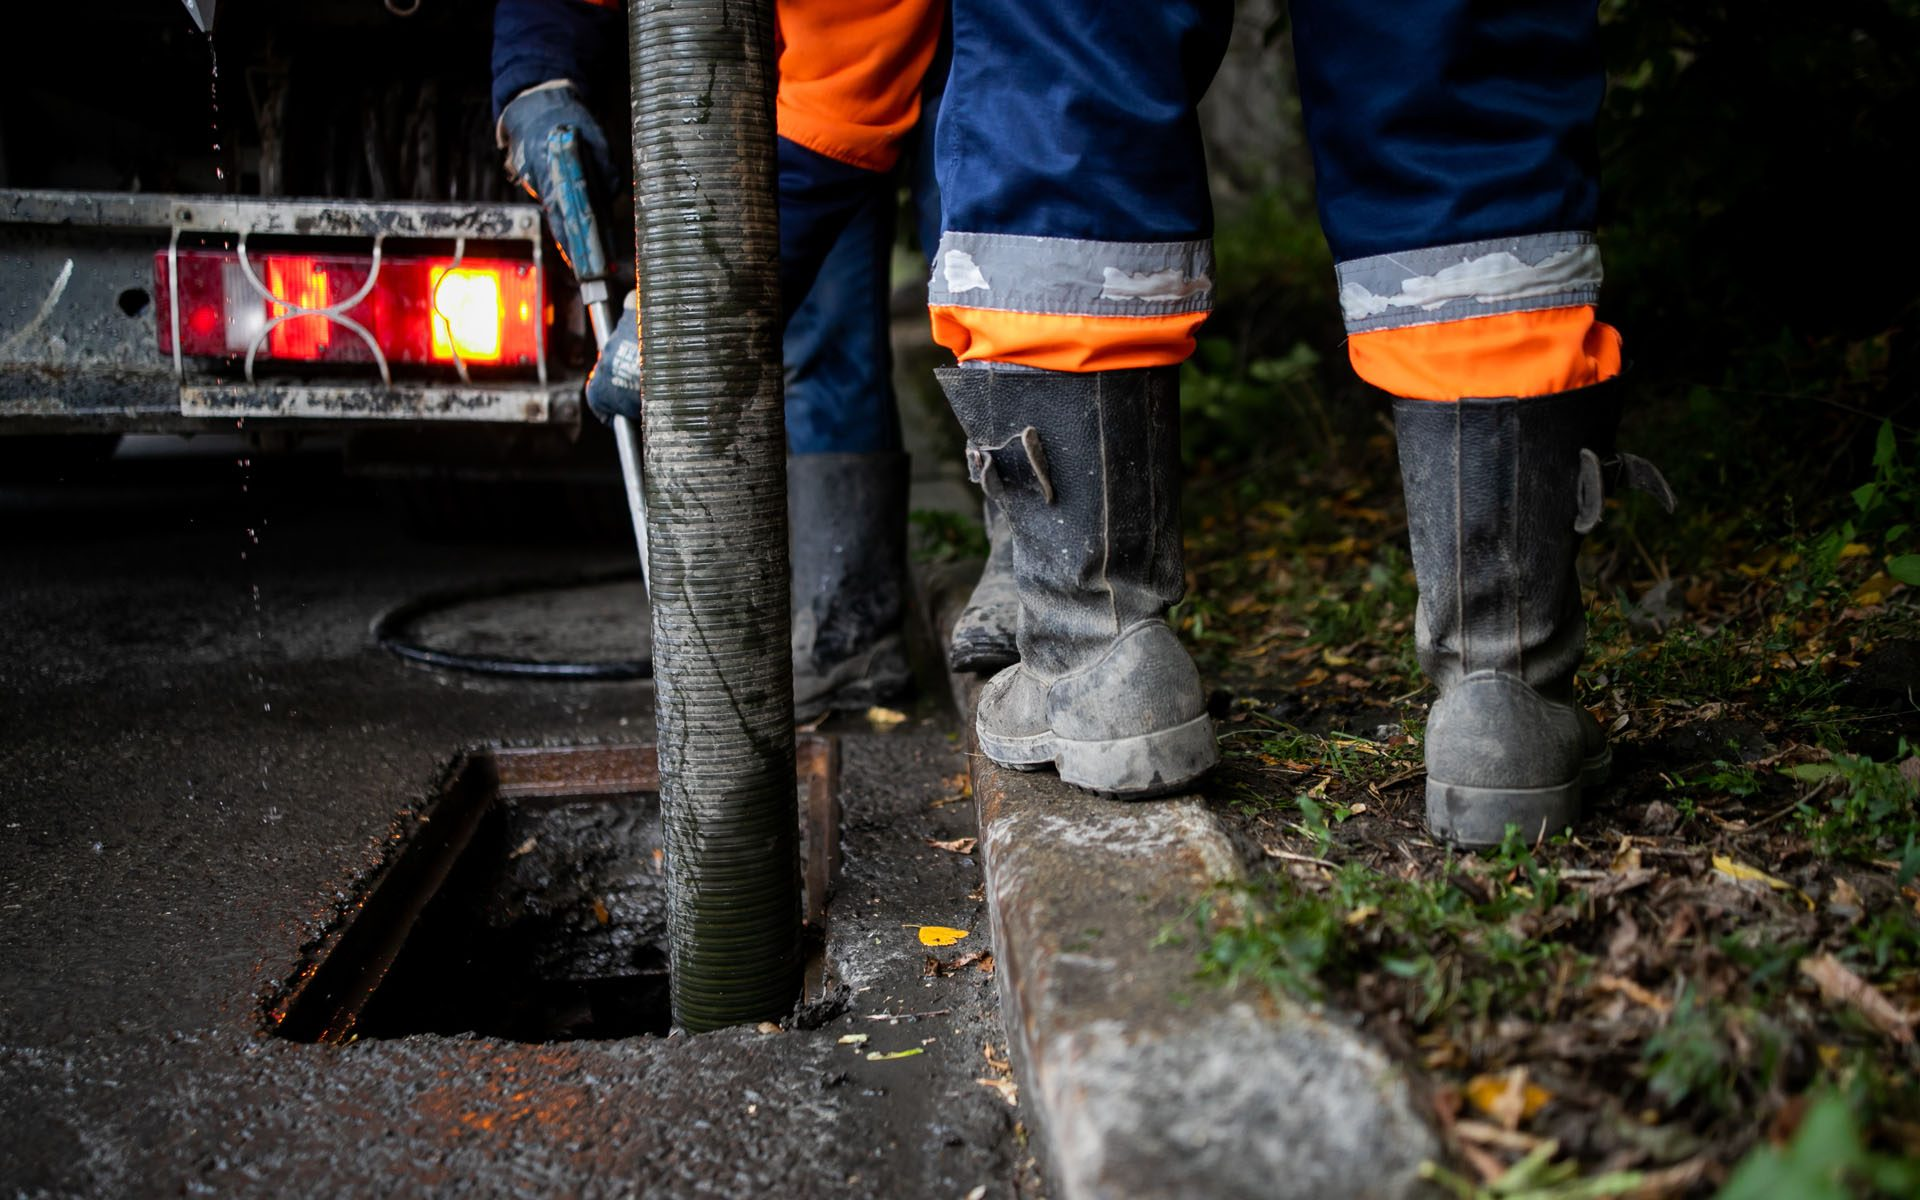 blocked drains reading why choose us